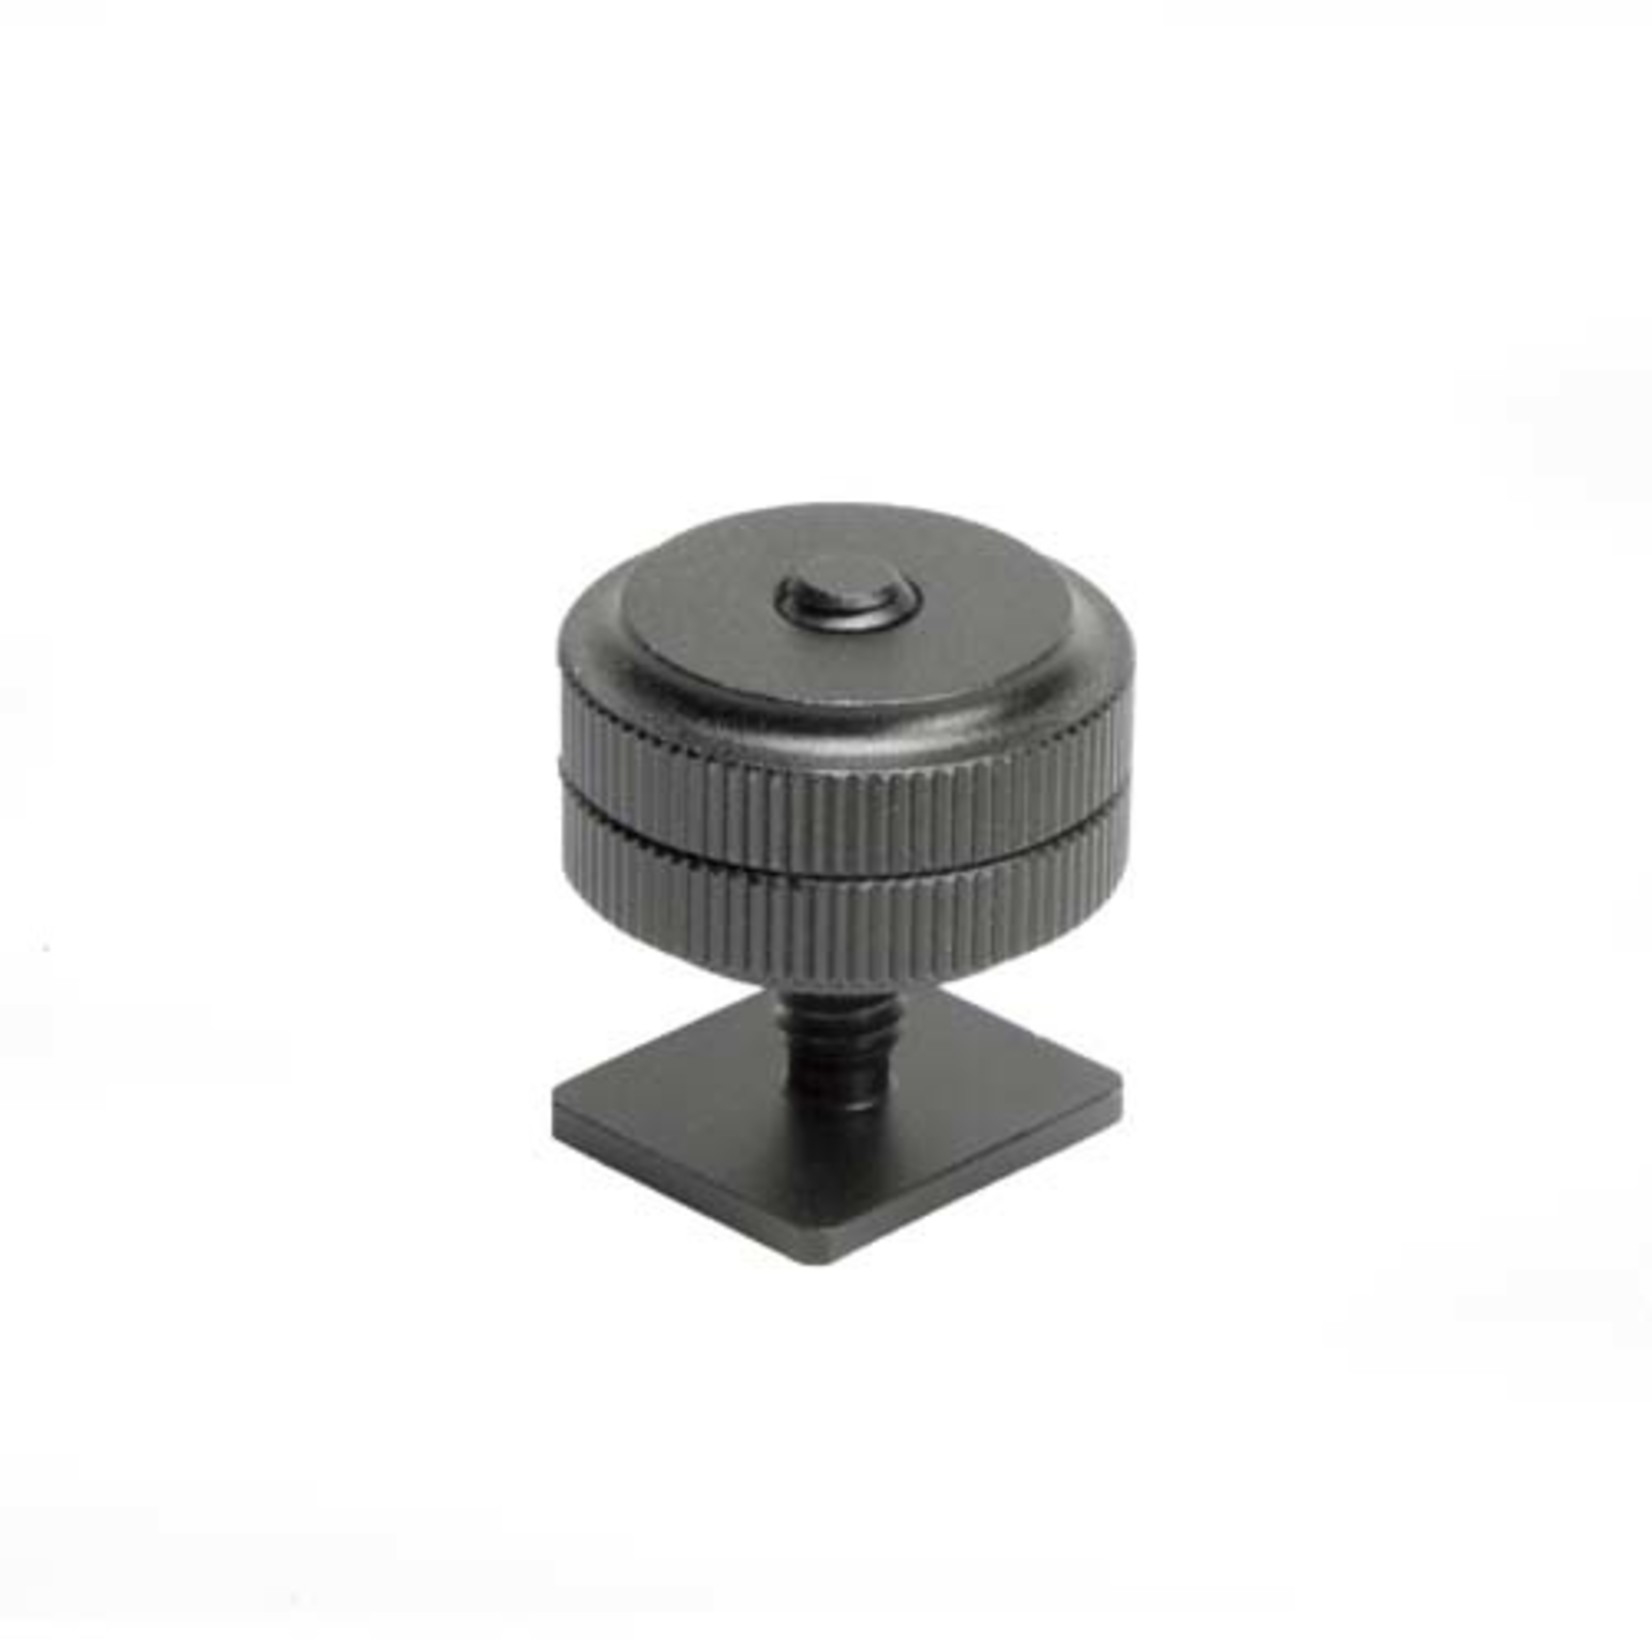 ProMaster Standard Shoe to 1/4-20 Thread Adapter